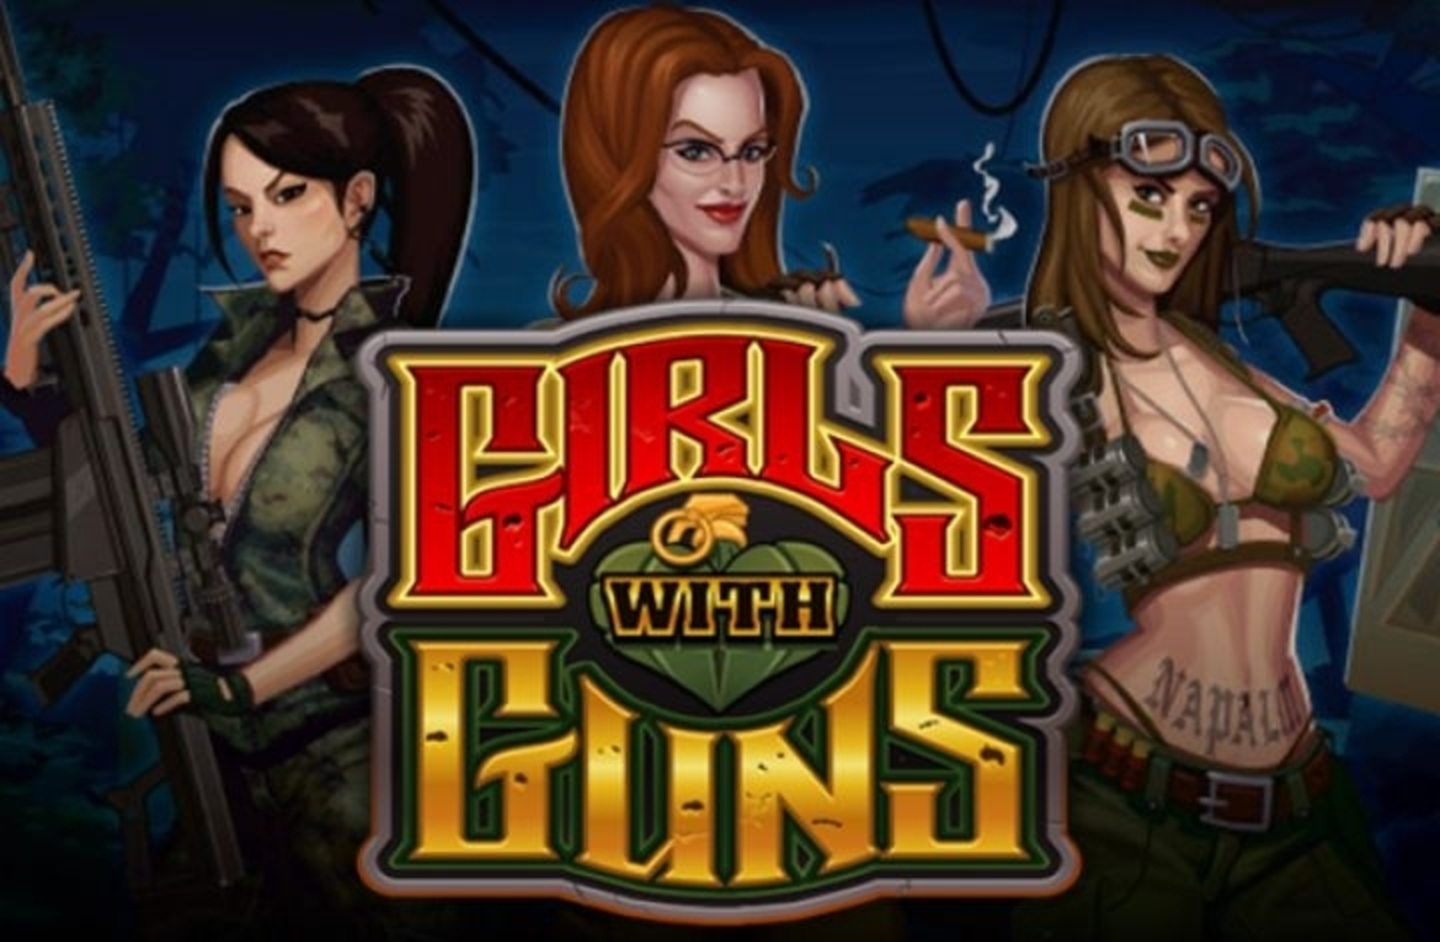 The Girls With Guns Online Slot Demo Game by Microgaming